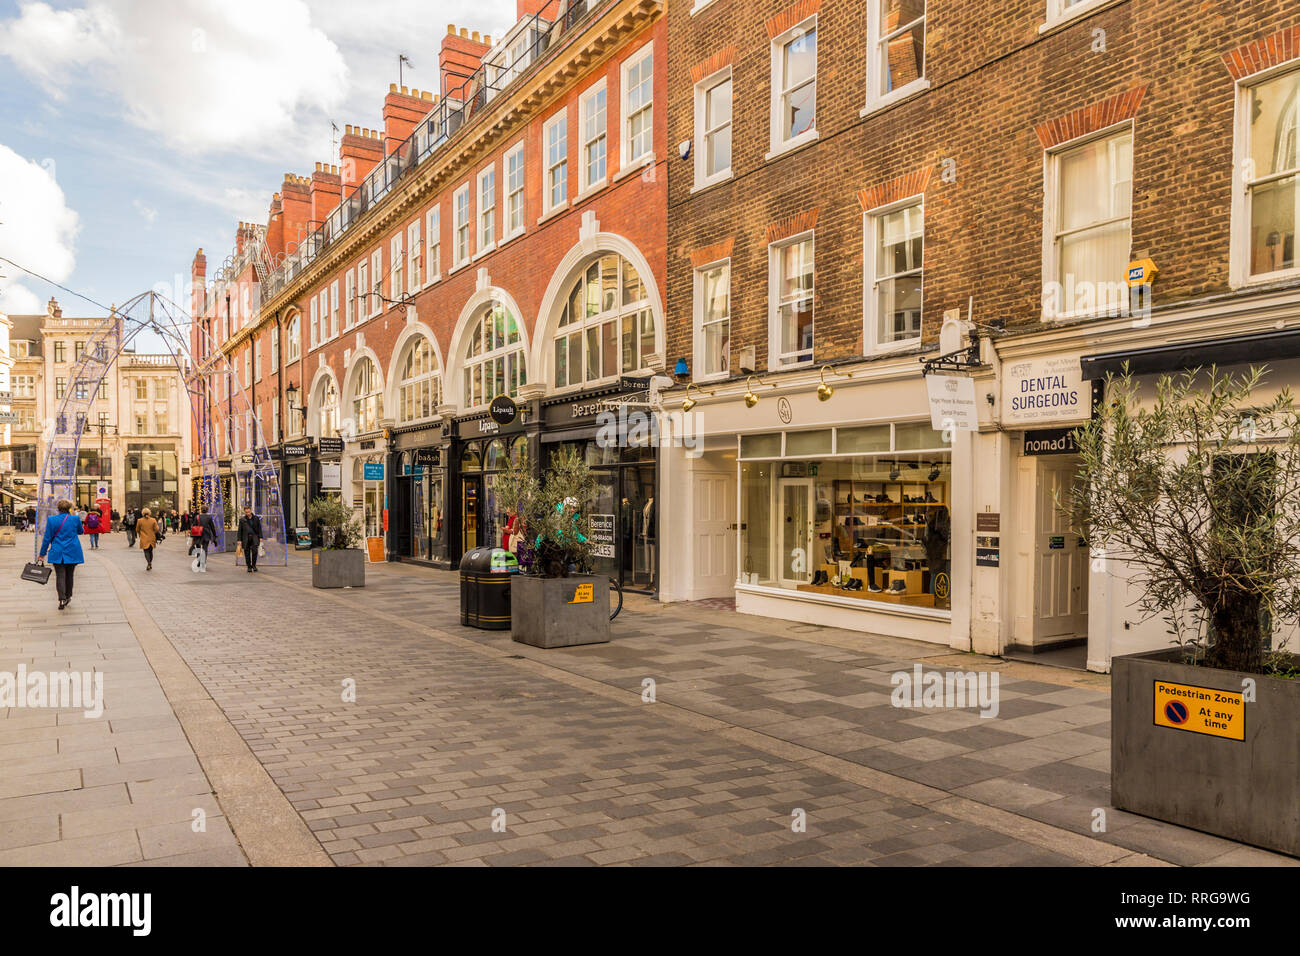 South Molton Street in Mayfair, London, England, United Kingdom, Europe - Stock Image